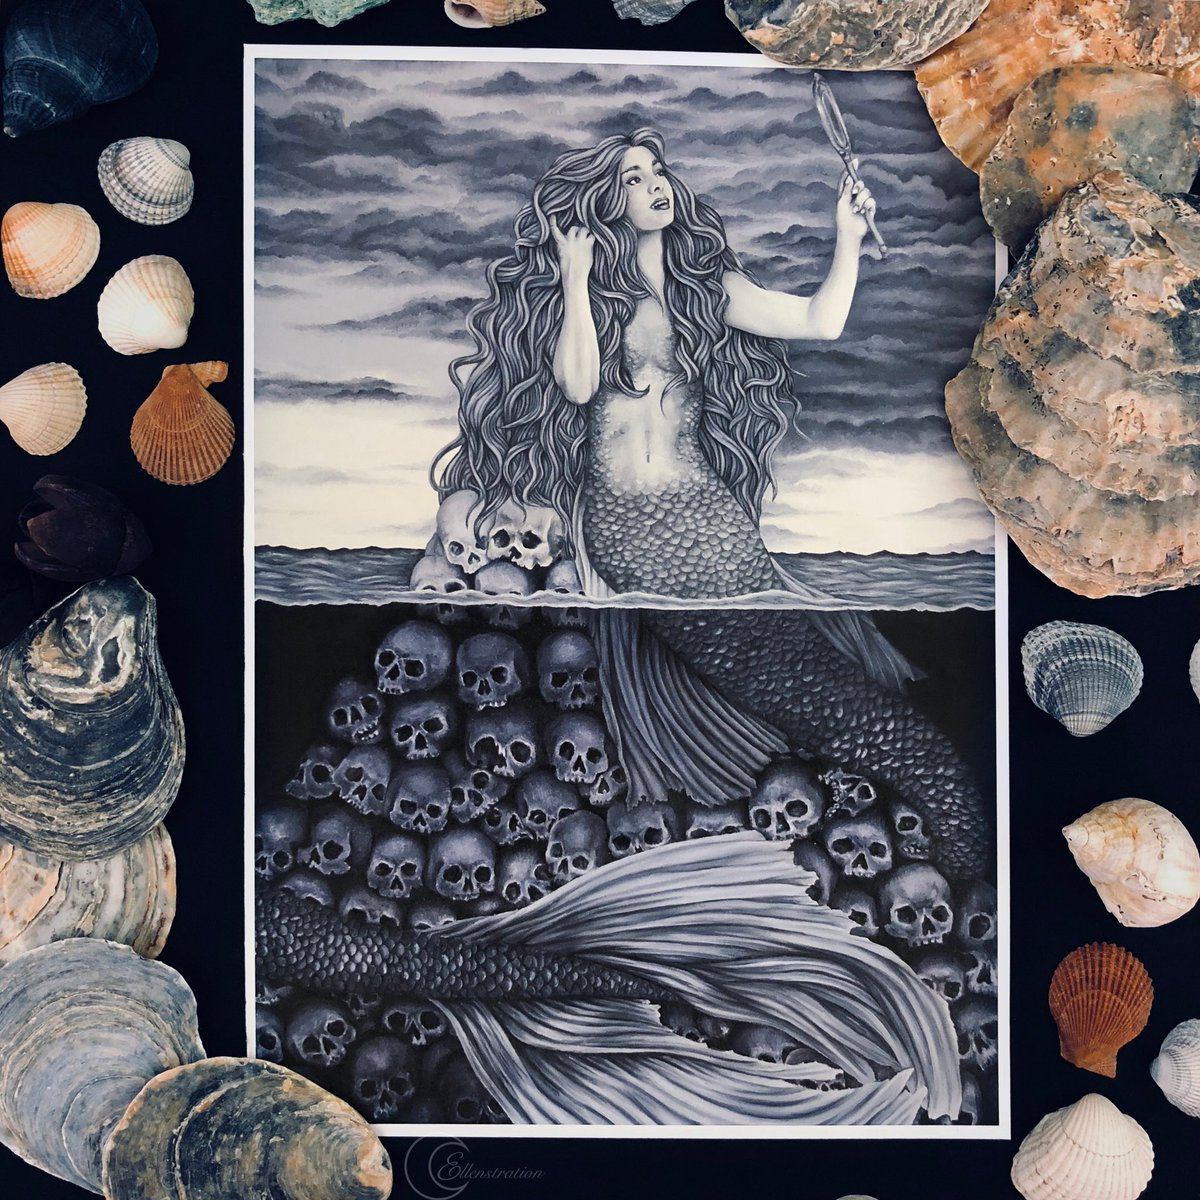 @IndiiCreates I love drawing & painting fantasy ladies with a gothic romance twist I have prints available here: 🛍 ellenstration.com/store Also my mermaid colouring book is available too 🧜 ✨Right now there is a sale on✨ 20% orders over £20 Code: SALE20